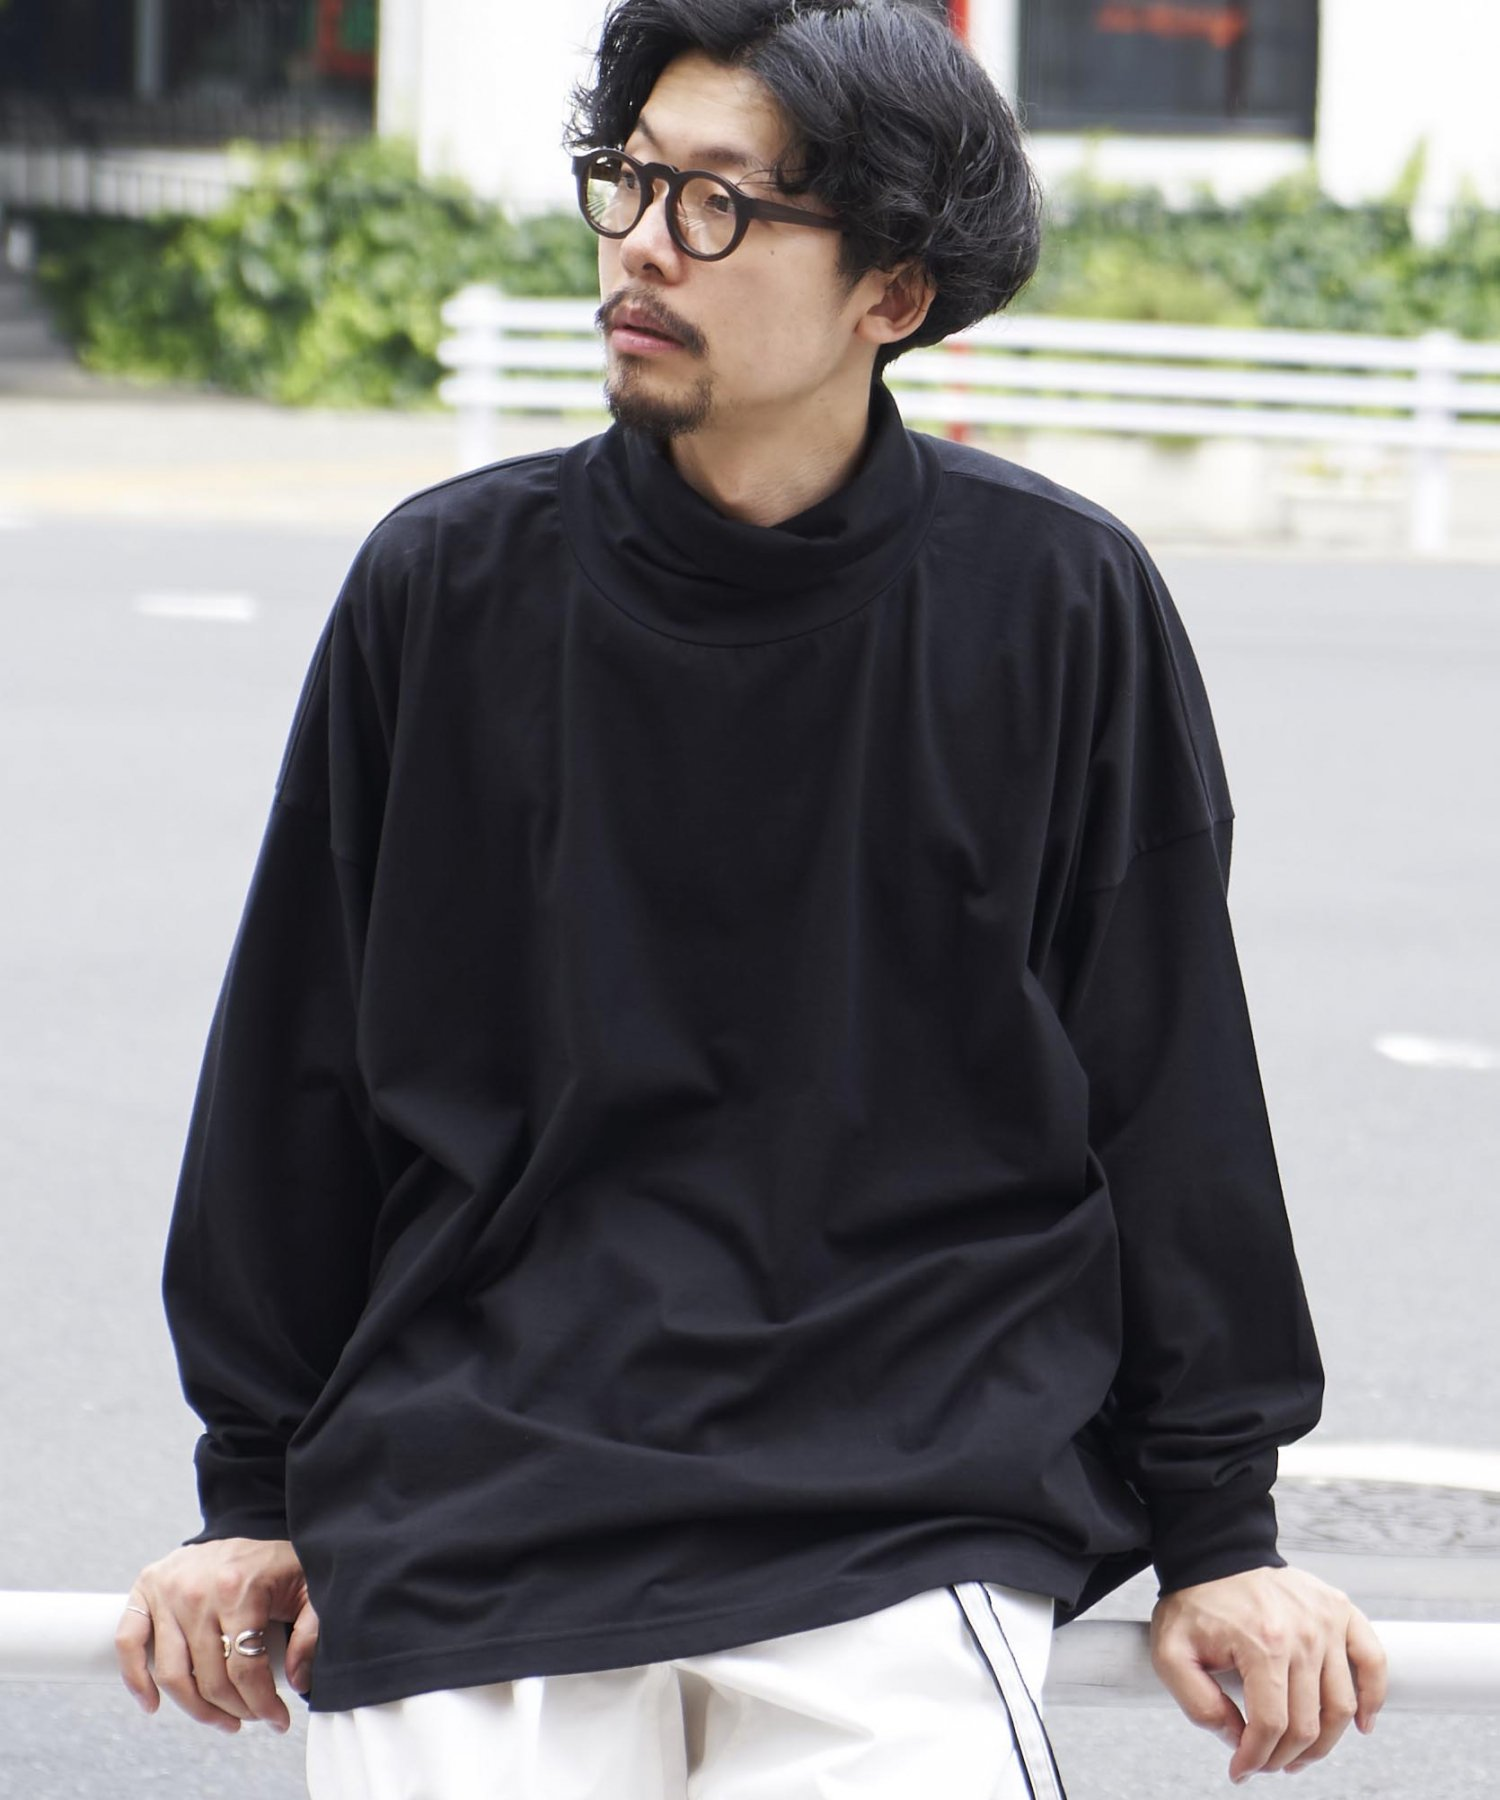 <img class='new_mark_img1' src='https://img.shop-pro.jp/img/new/icons15.gif' style='border:none;display:inline;margin:0px;padding:0px;width:auto;' />【REBIRTH PROJECT】SOUL COTTON ドロップショルダータートルネック BLK(9月上旬お届け)